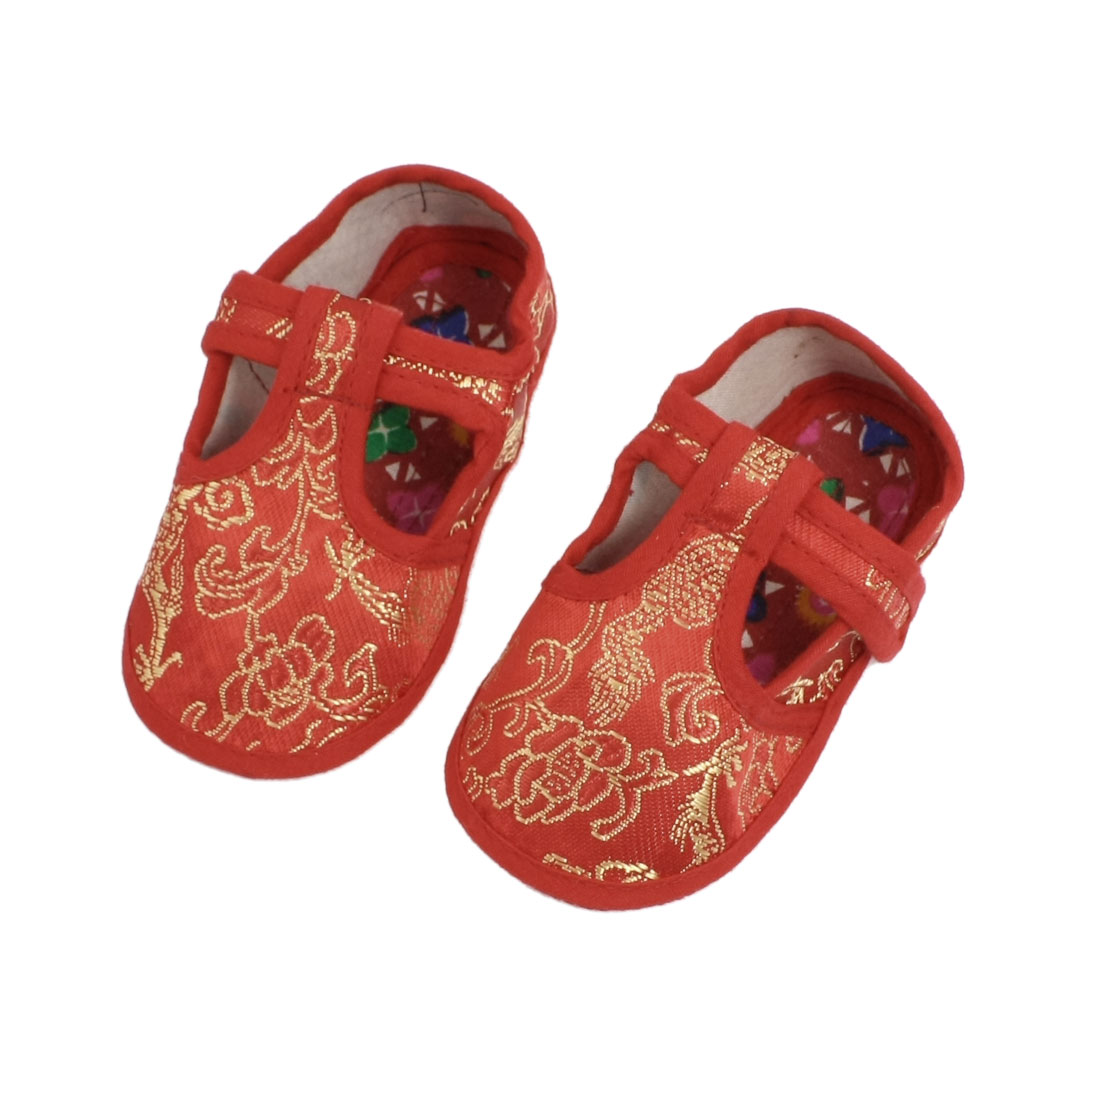 Gold tone dragon phoenix flower prints red crib toddler shoes pair